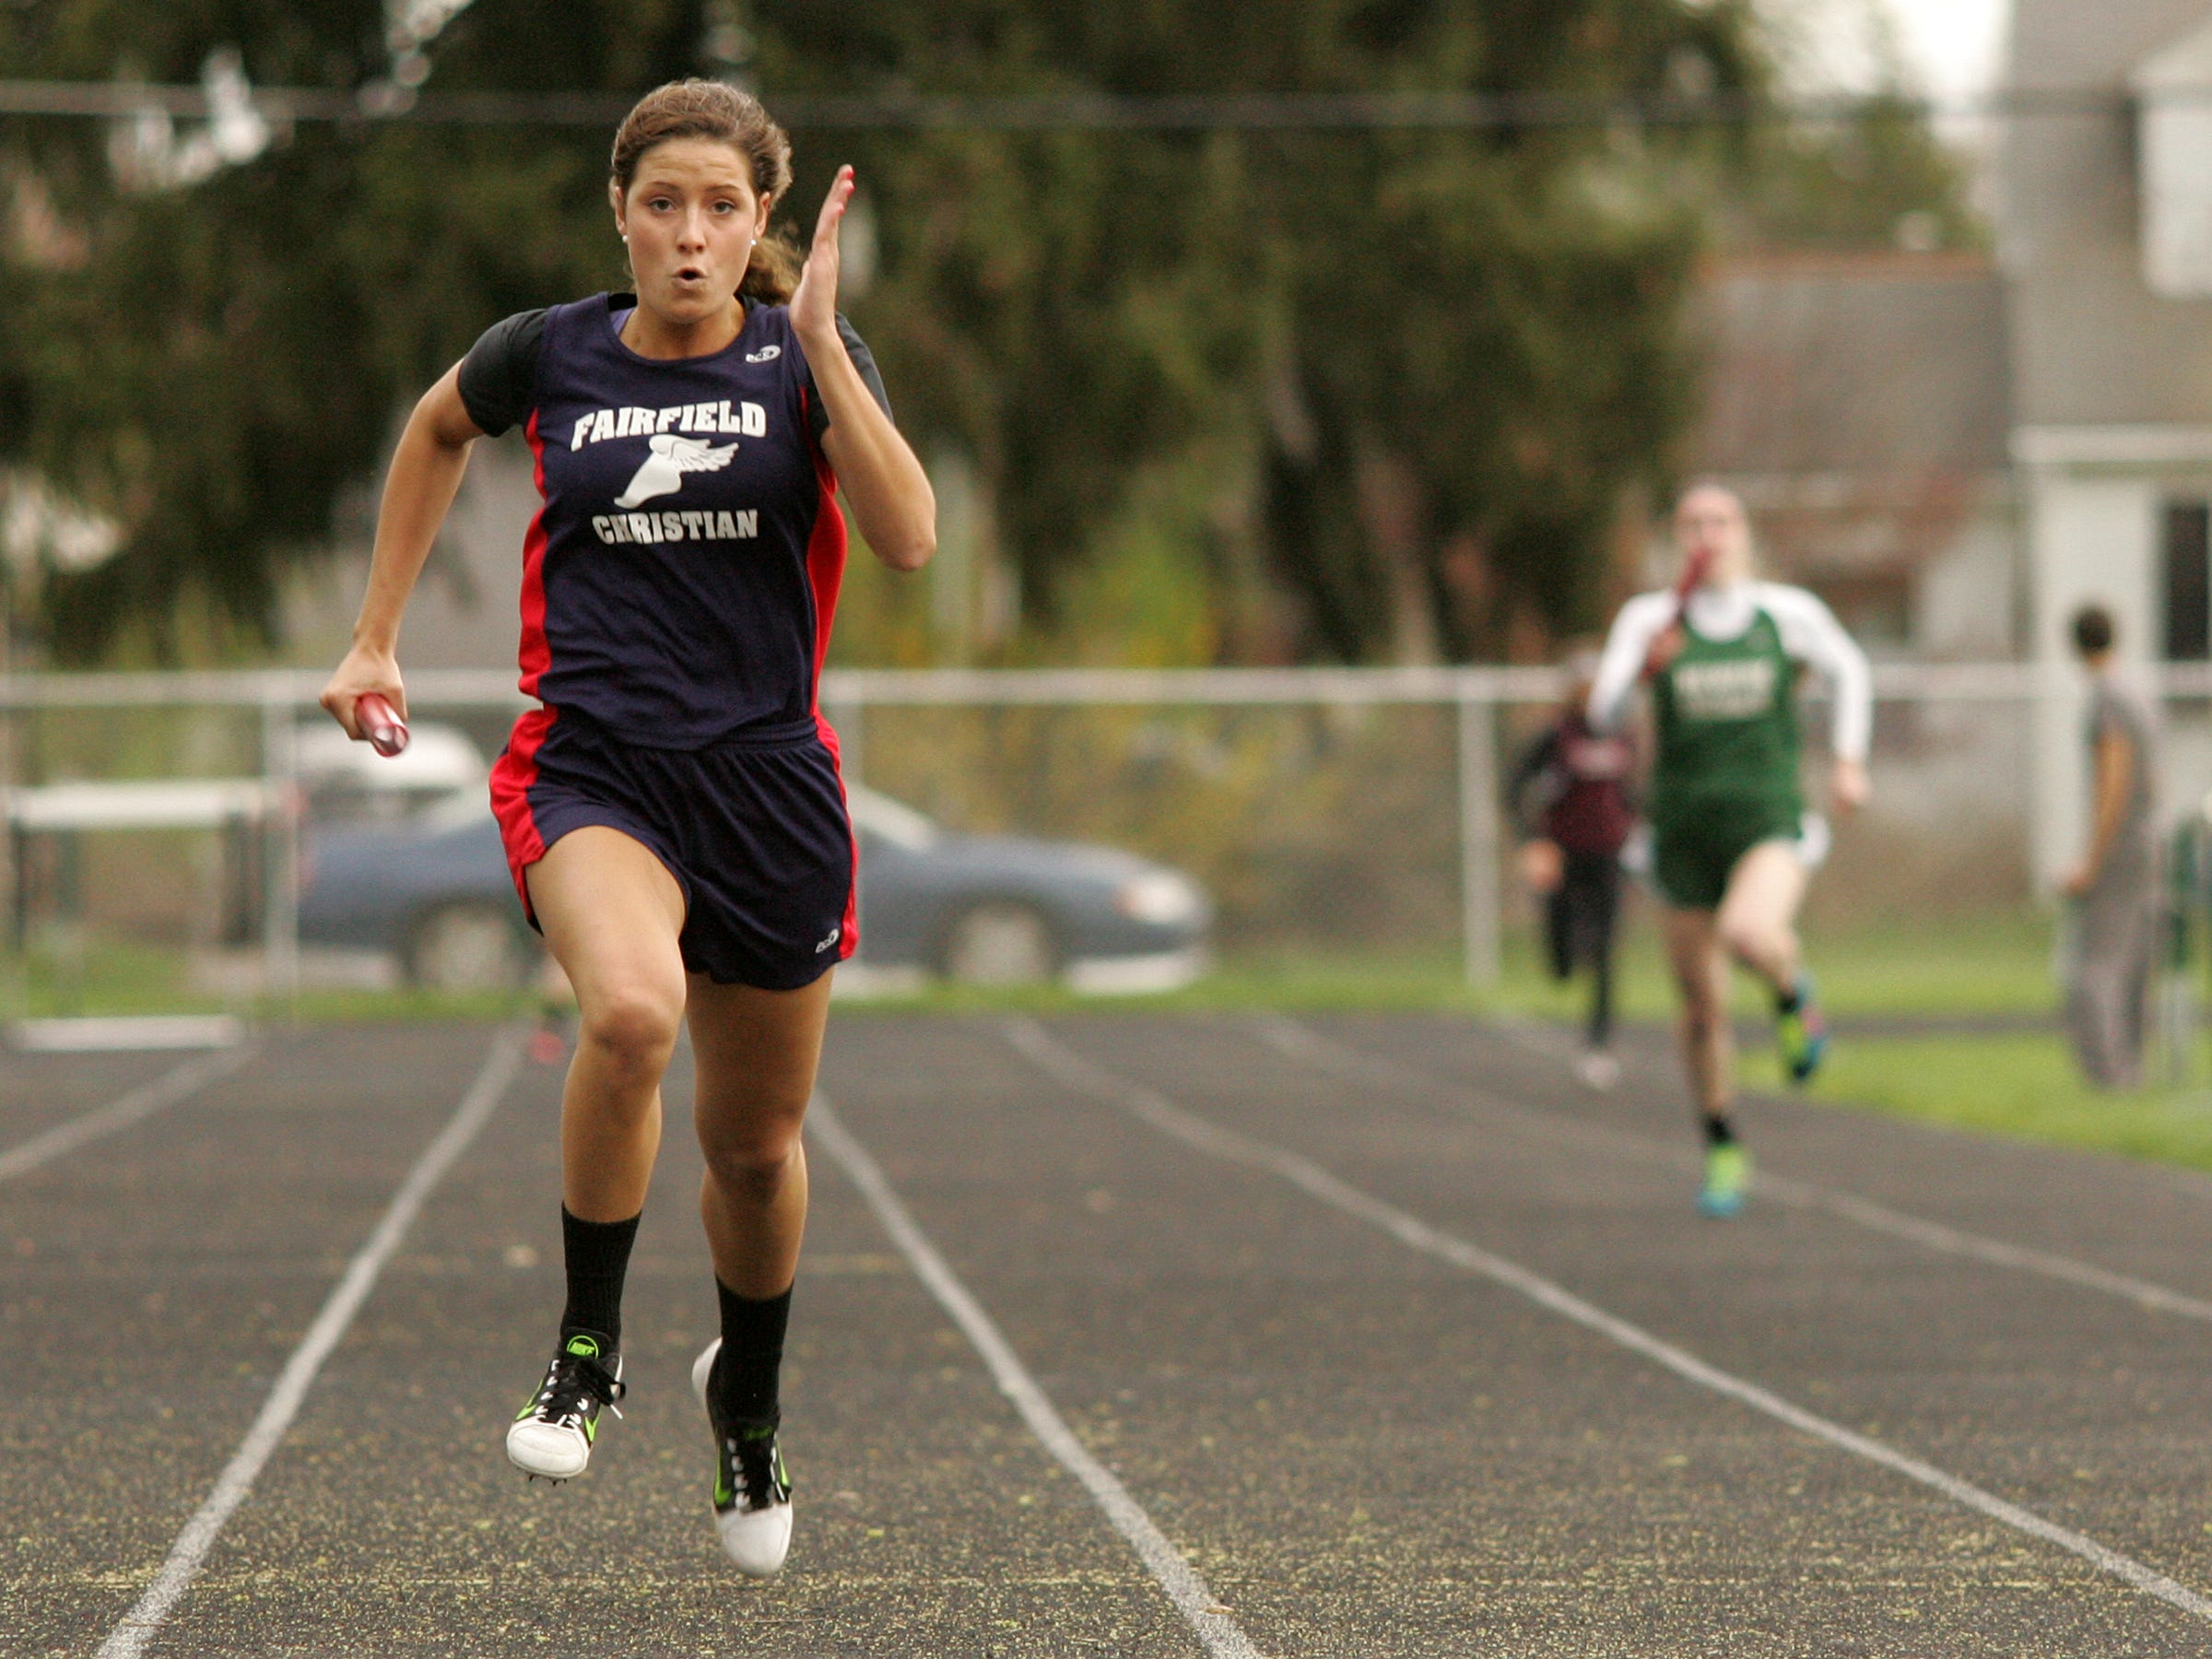 Fairfield Christian sophomore Ruthie Johnson anchors the 800 relay Monday during a meet at Newark Catholic. Johnson won the 100 and 400.